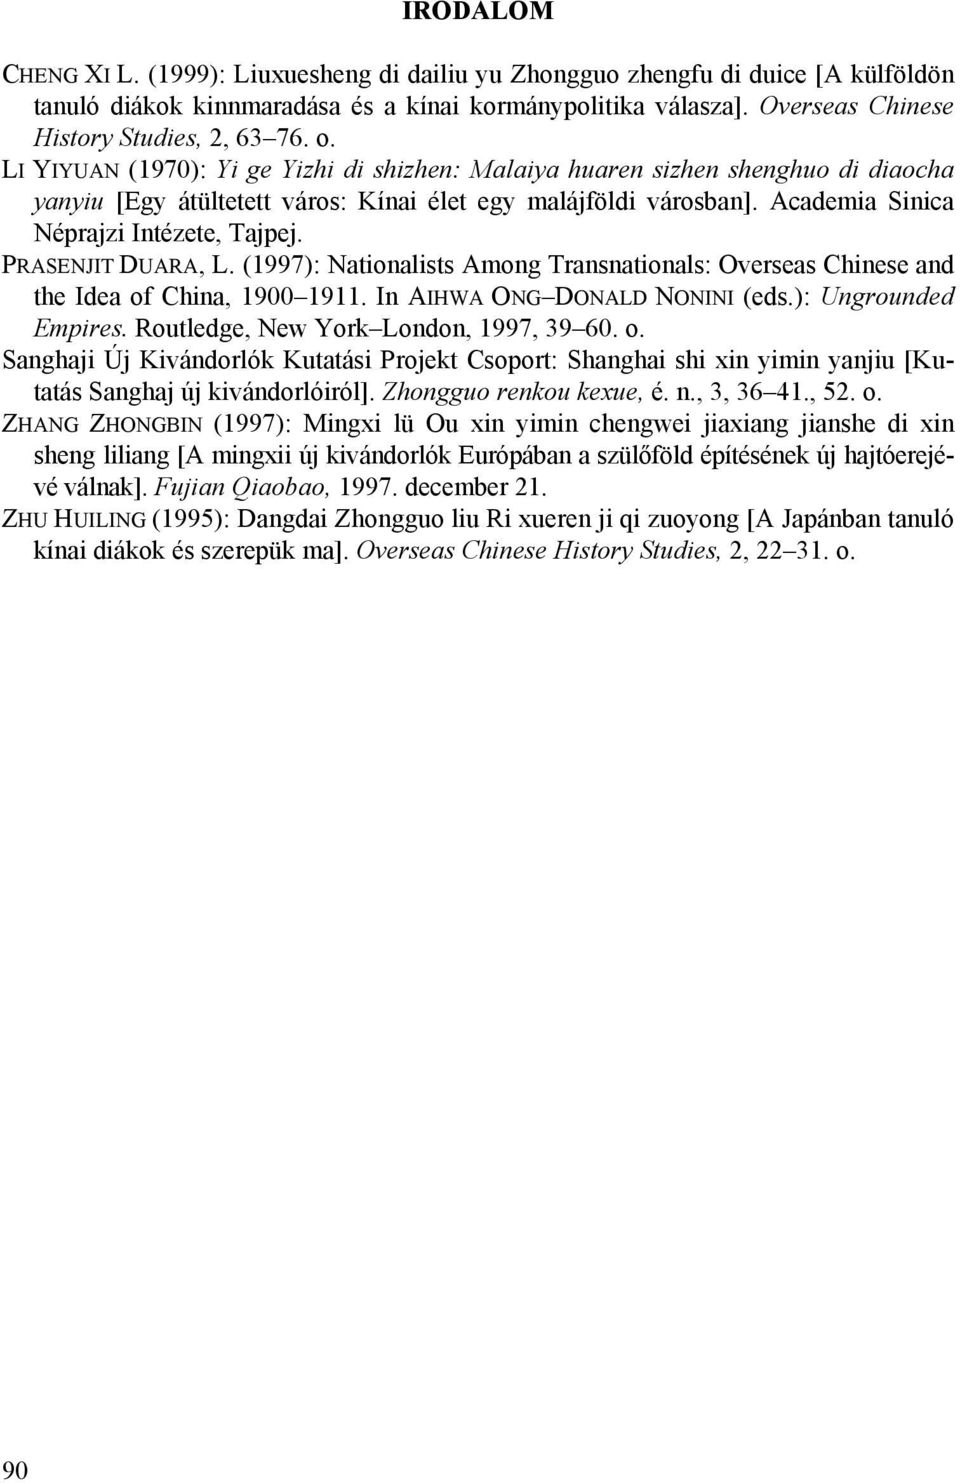 PRASENJIT DUARA, L. (1997): Nationalists Among Transnationals: Overseas Chinese and the Idea of China, 1900 1911. In AIHWA ONG DONALD NONINI (eds.): Ungrounded Empires.